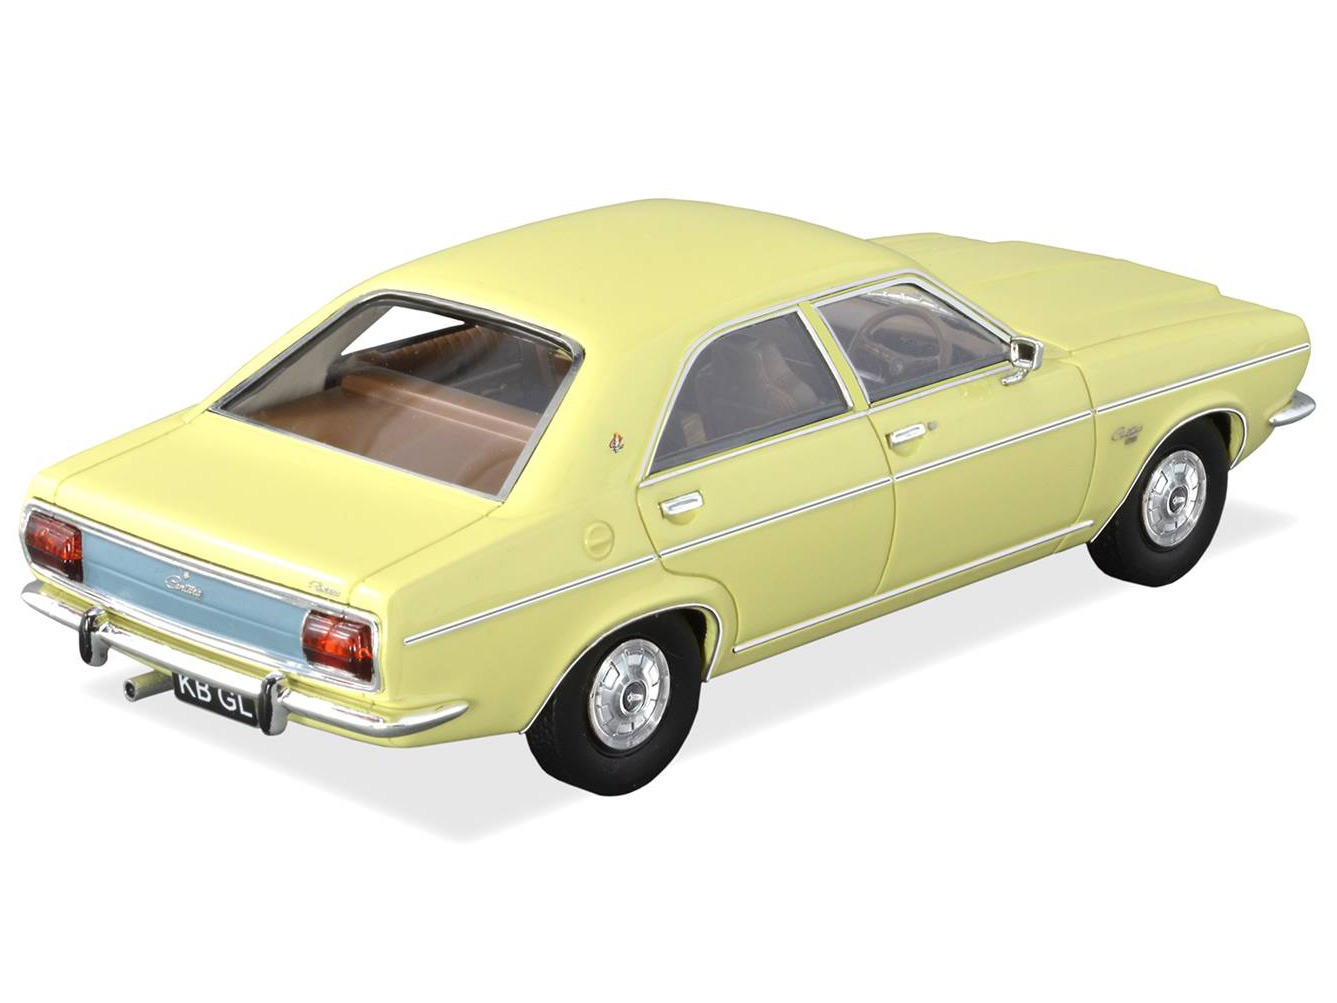 1976 KB Chrysler Centura GL – Yellow